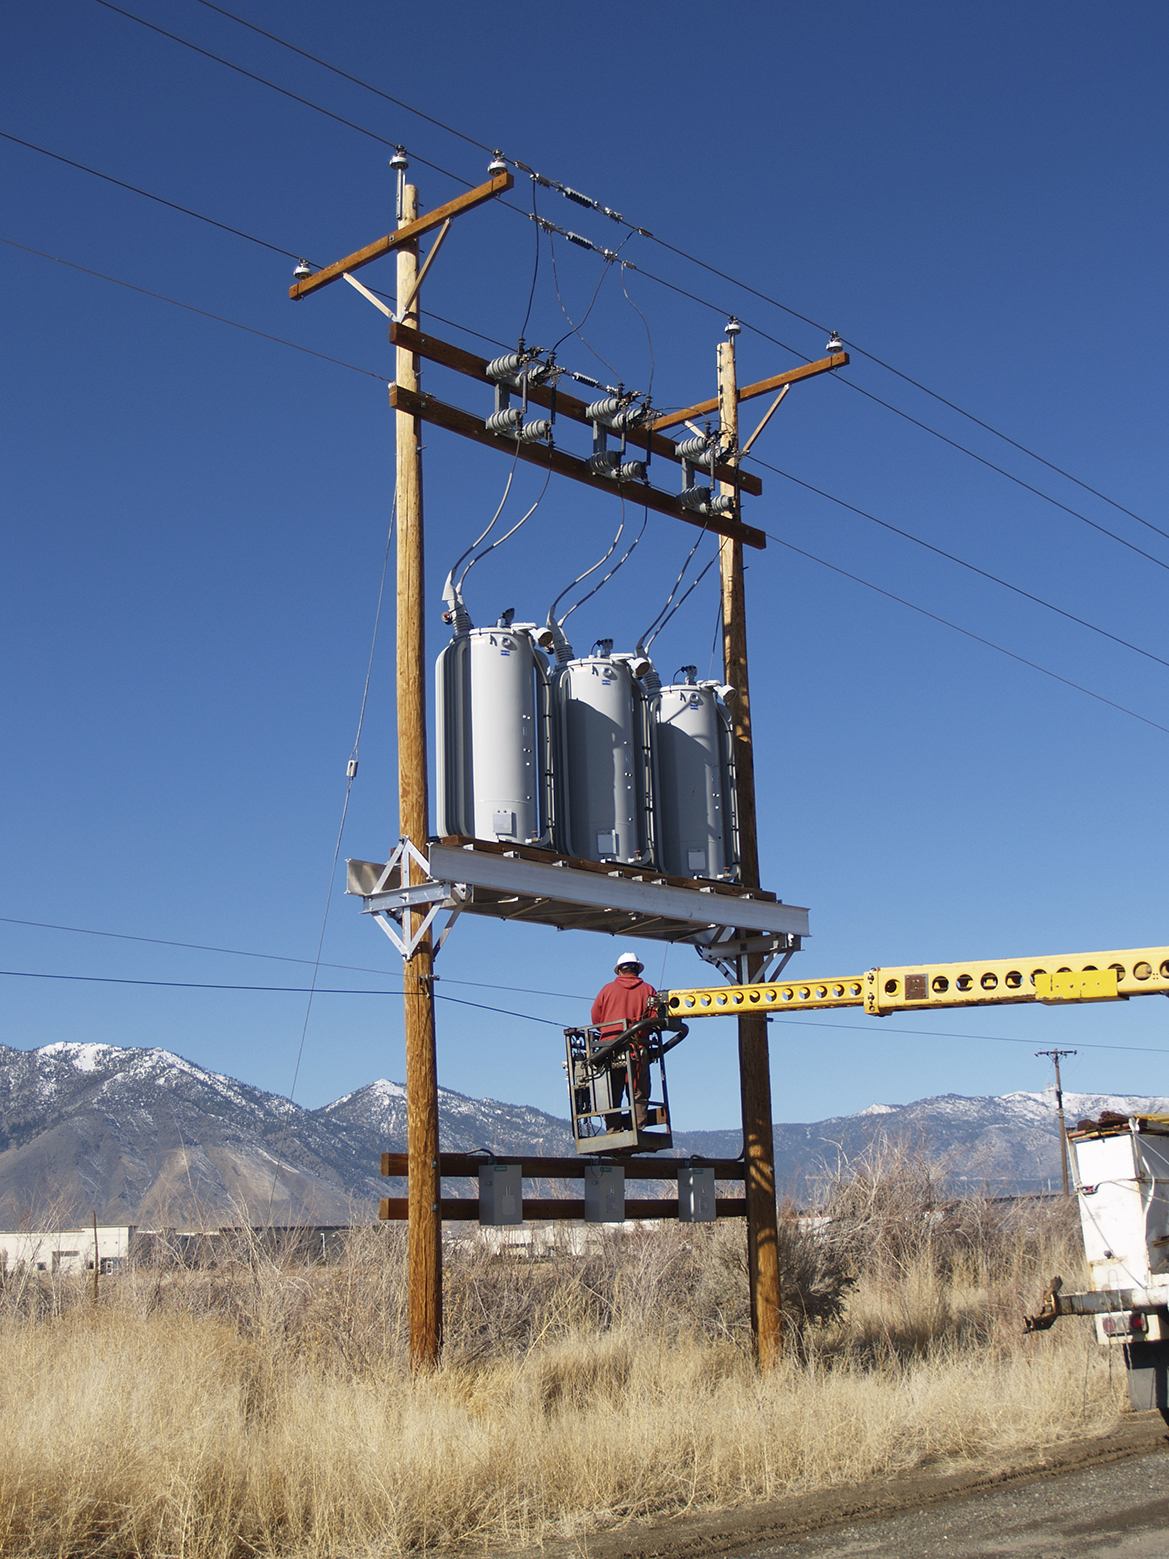 "<a href=""/services-all/oil-sampling-of-energized-pole-top-transformers"">OIL SAMPLING OF ENERGIZED POLE TOP TRANSFORMERS</a>"